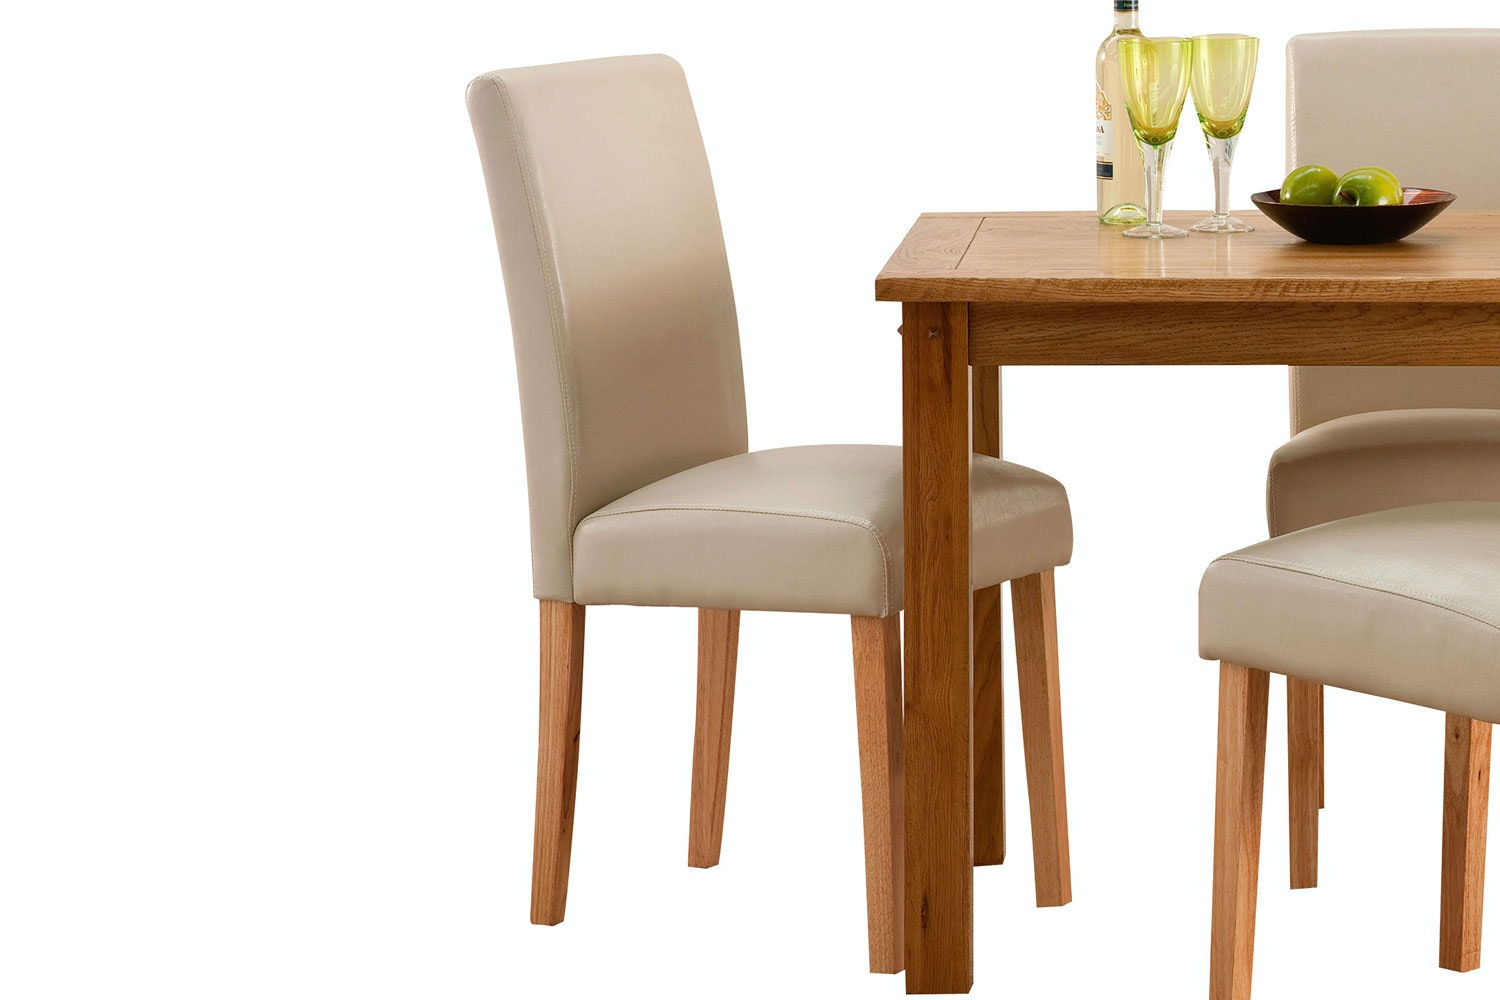 Harvey Norman Dining Chairs Albury Dining Chair By  : Portman chair from amlibgroup.com size 1500 x 1000 jpeg 72kB